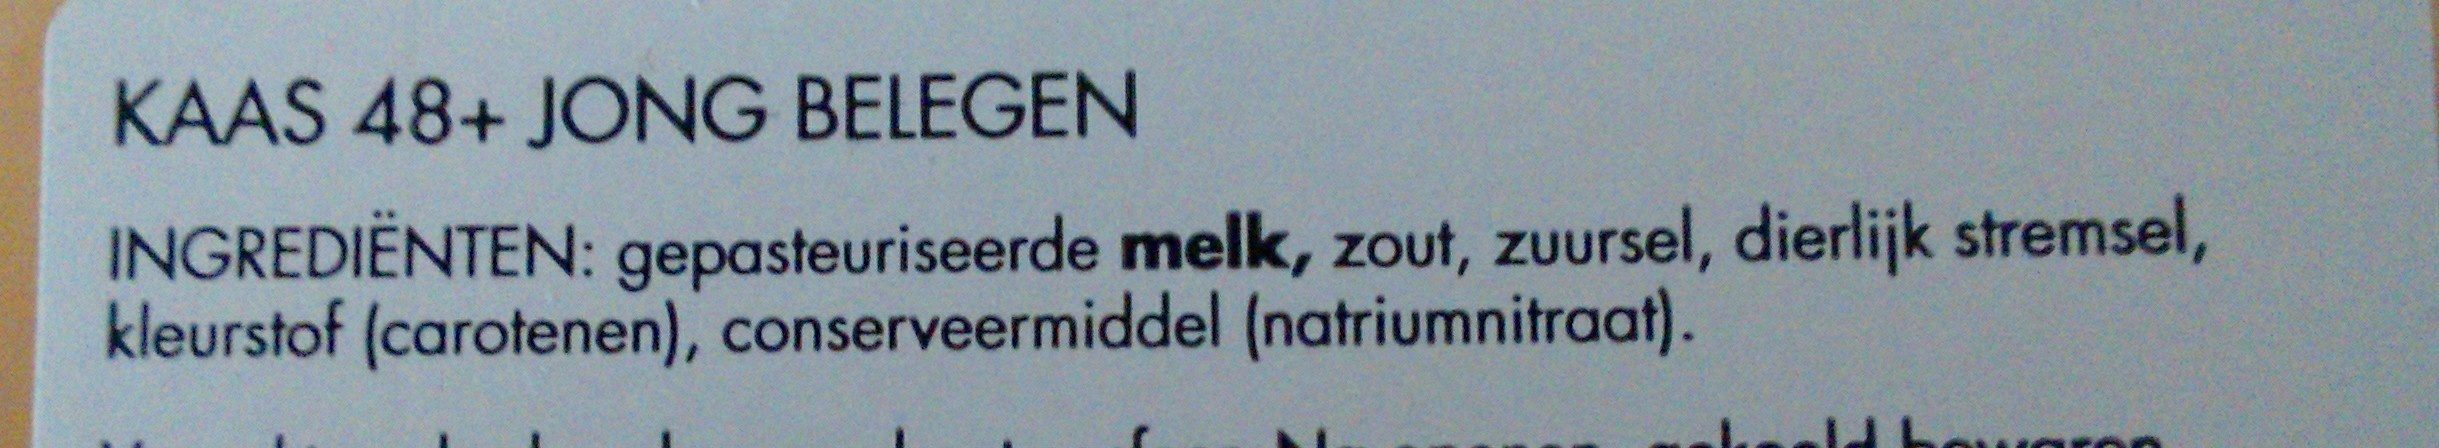 Goudse kaas 48+ - Ingredients - nl